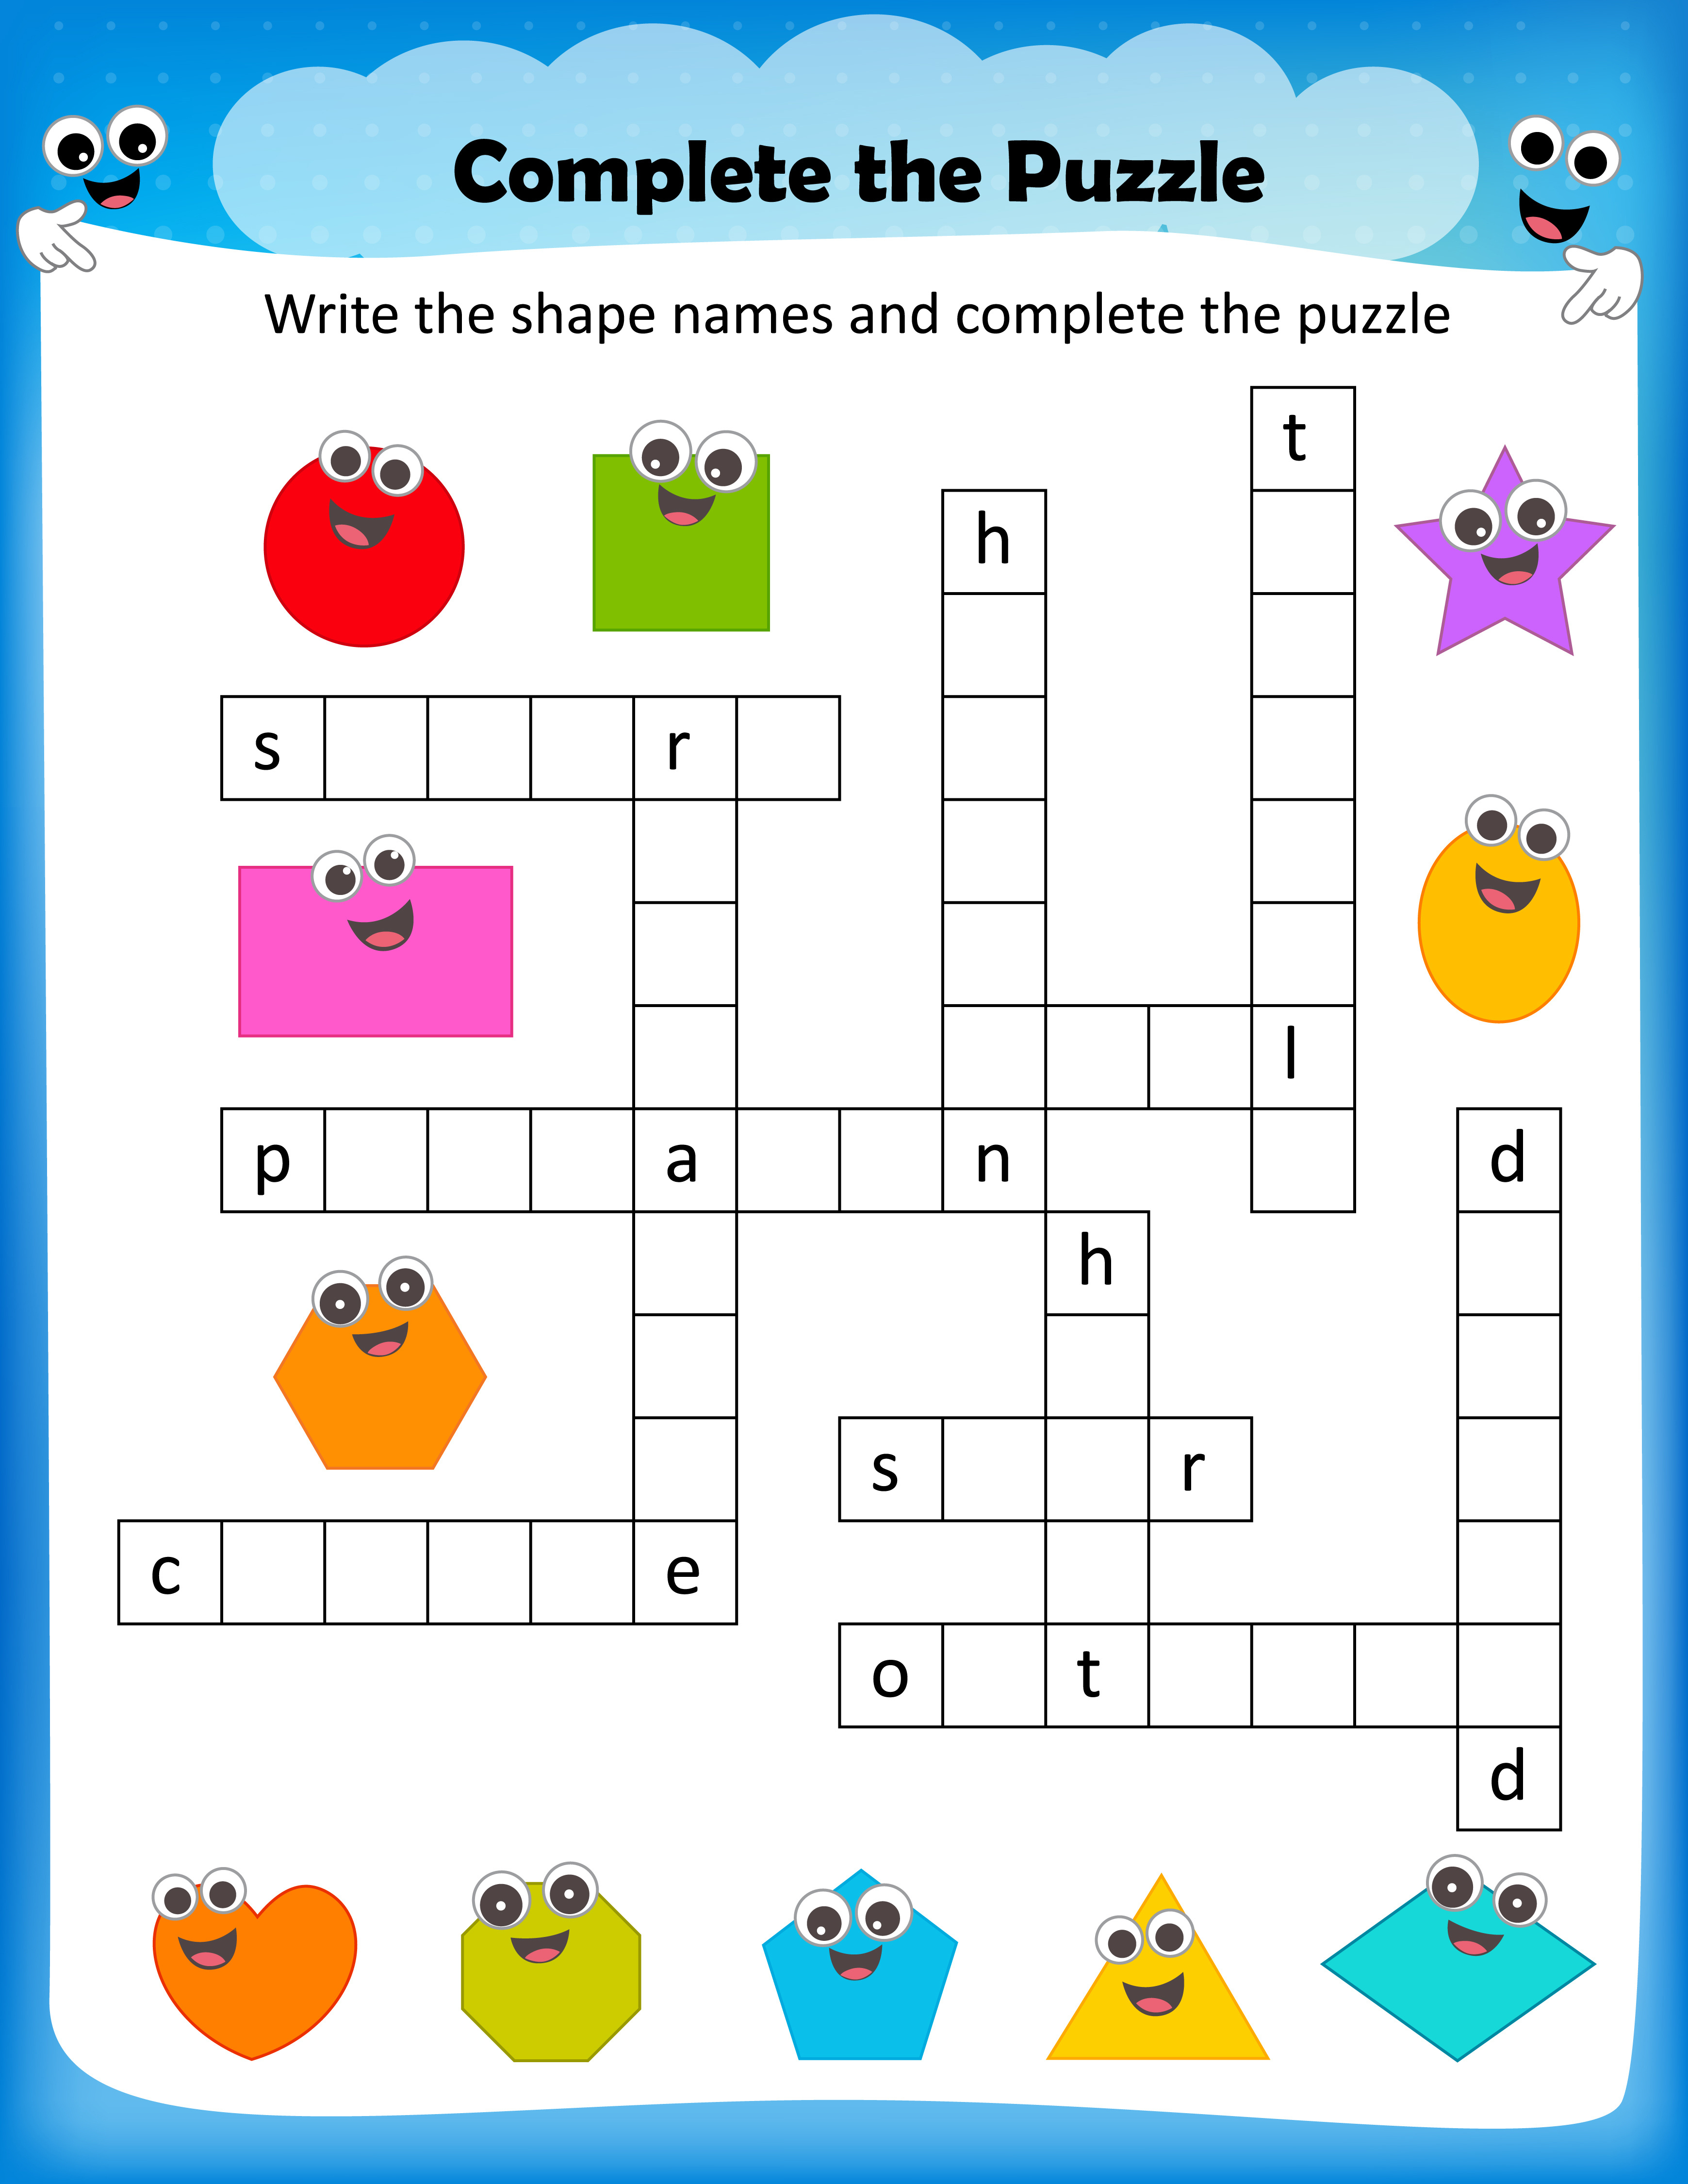 Free Printable Crosswords With Top 10 Benefits For Our Kids - Free Printable Crossword Puzzles For 5Th Graders